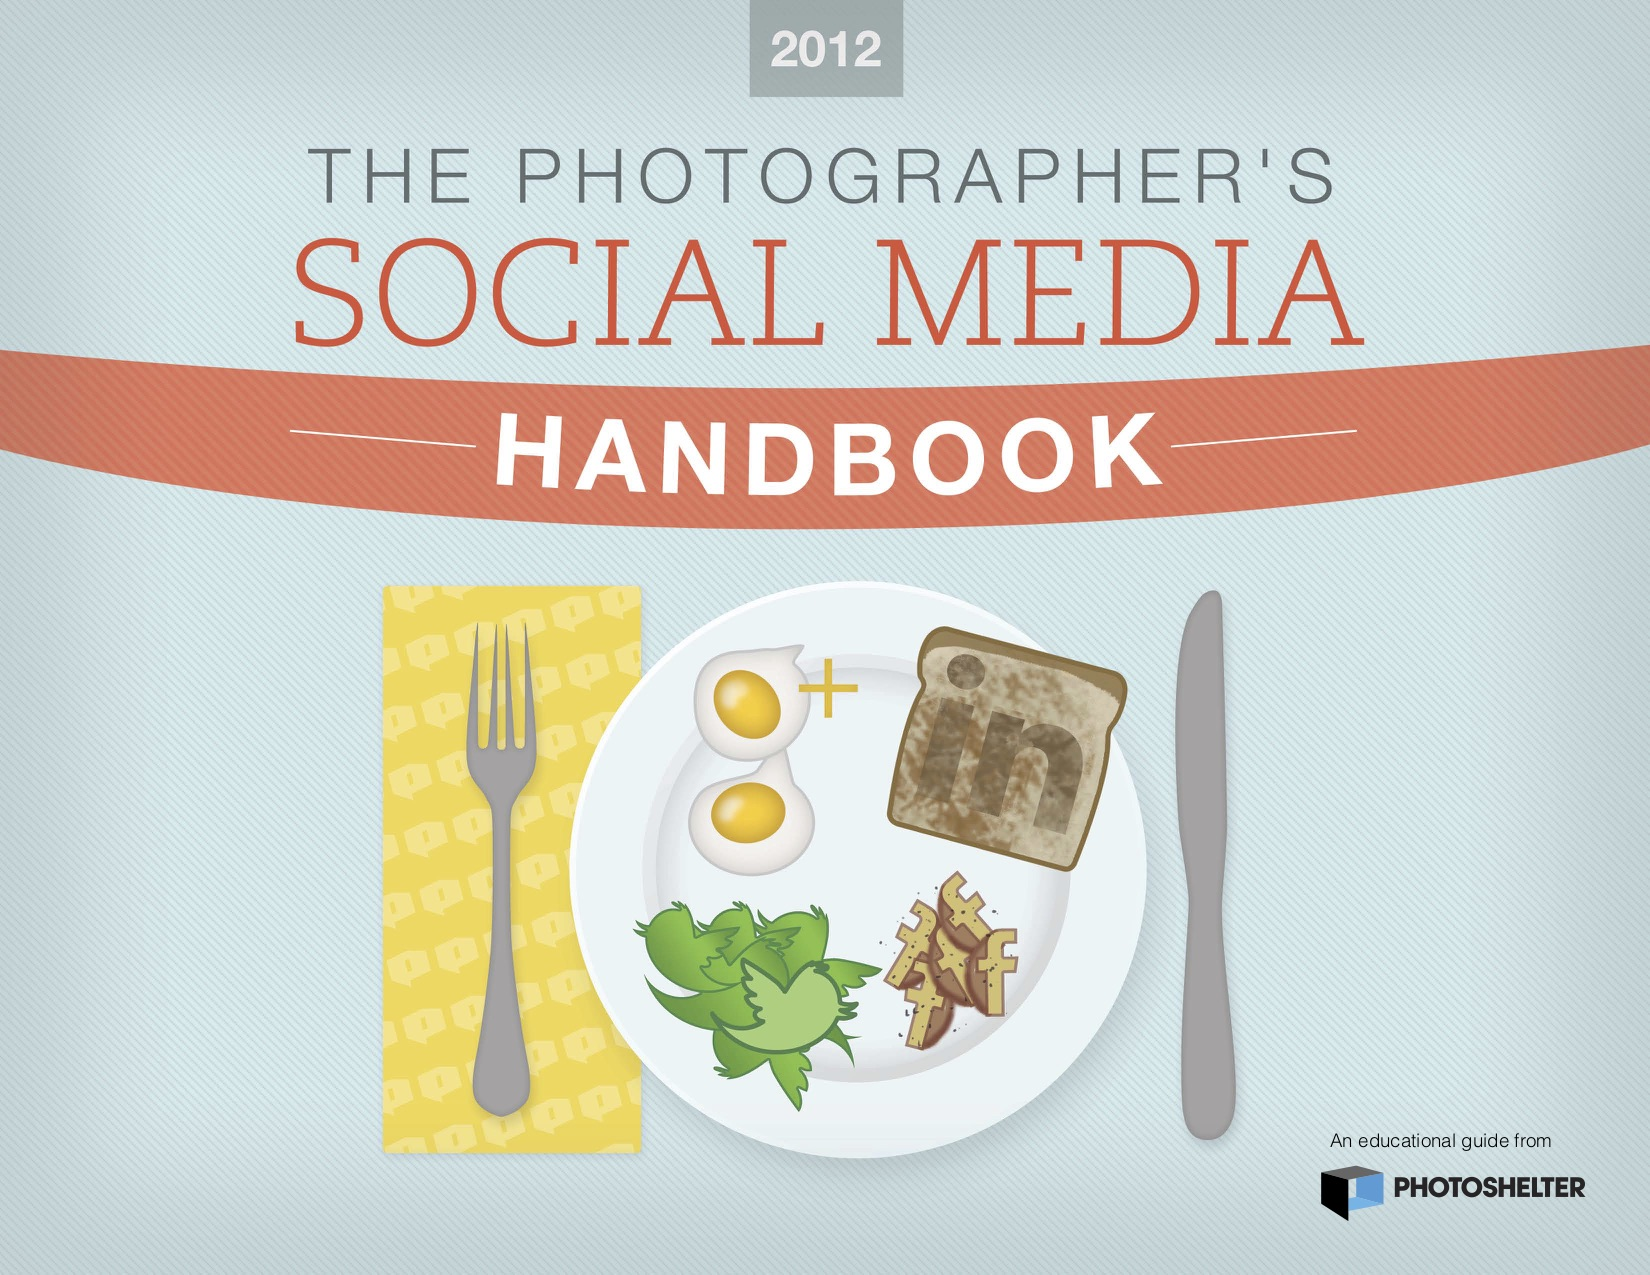 The top reads The Photographer's Social Media Handbook. Below the text is a dinning table setting, with a napkin, knife, fork and plate. On the plate are: an egg shaped like the Google+ logo, a slice of toast with the LinkedIn logo burned in the top, a salad with the greens shaped like the Twitter logo, and potatoes in the shape of the Facebook logo.